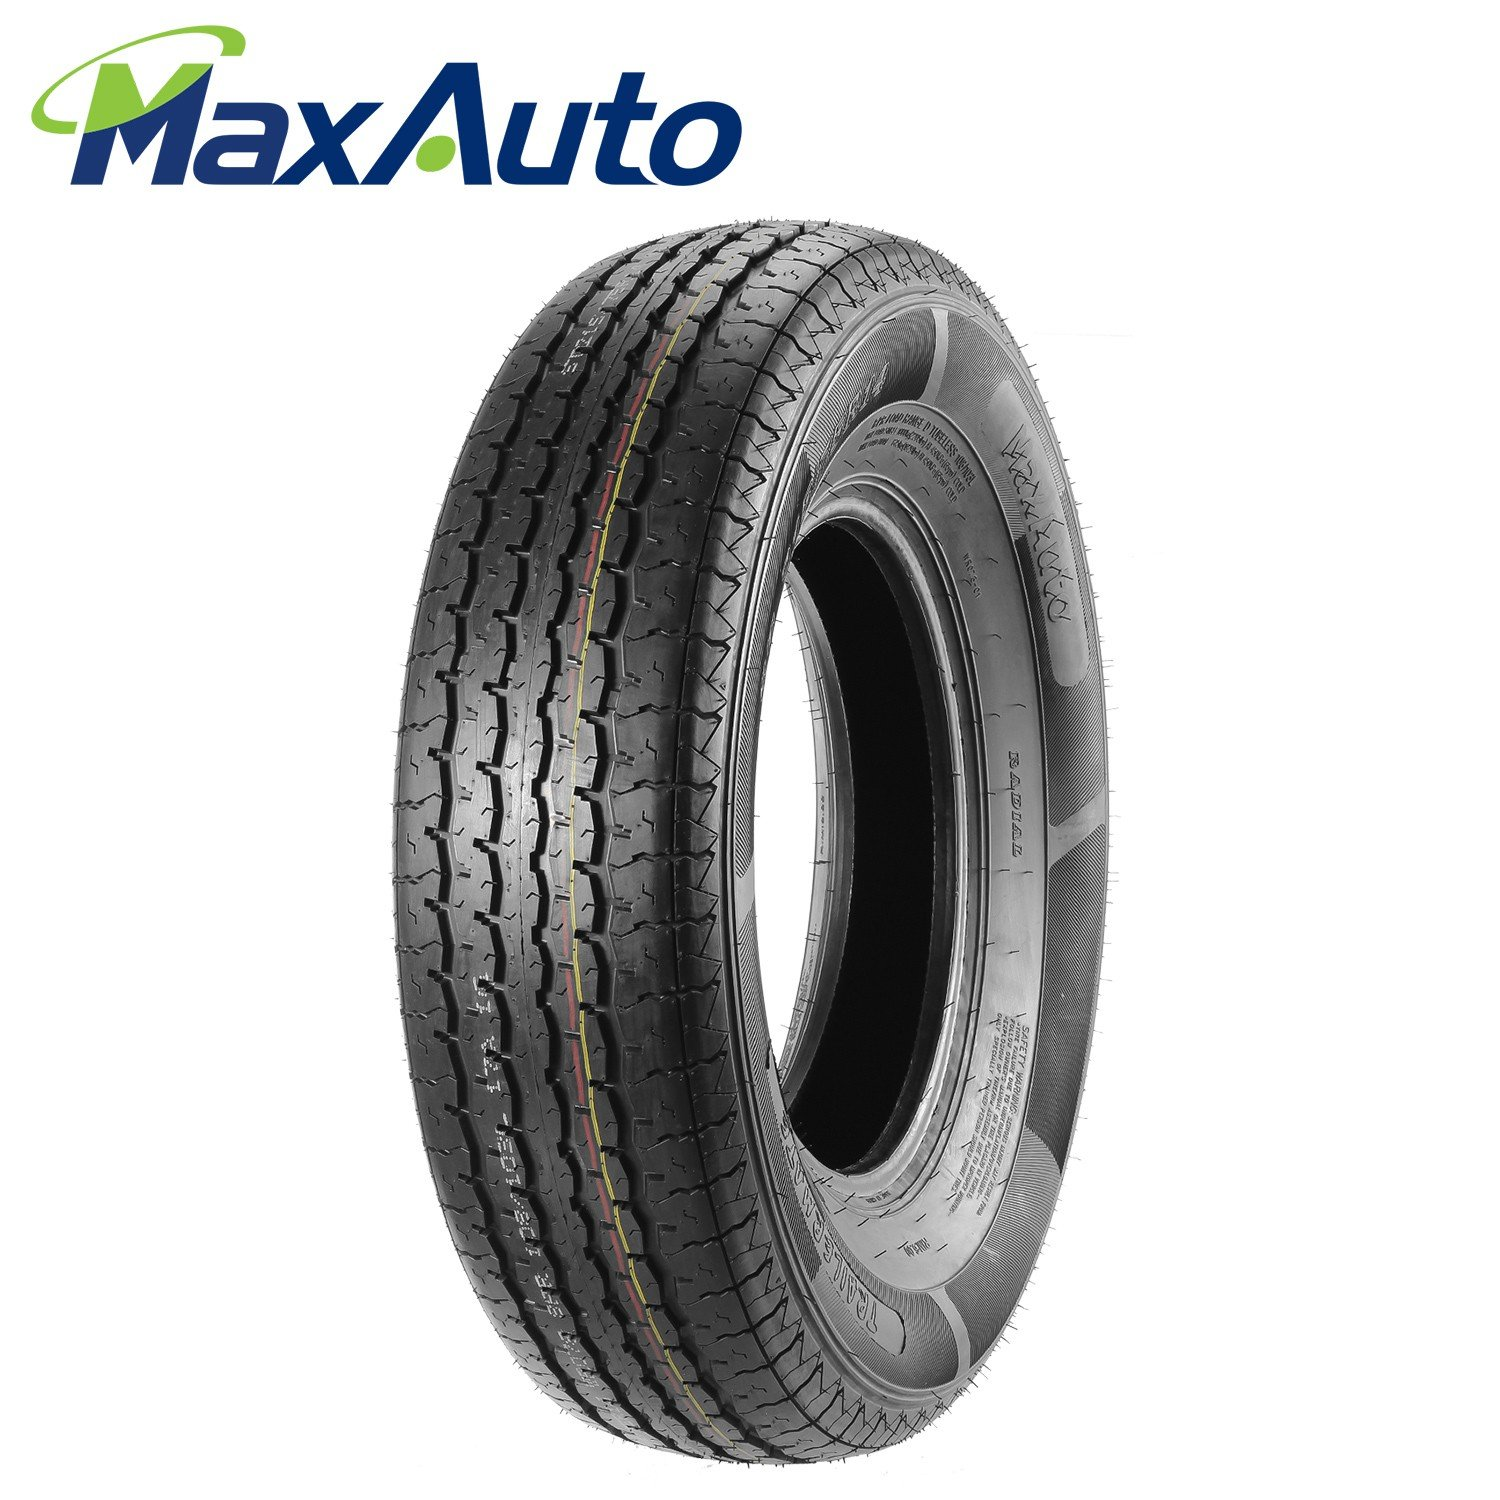 ST215/75R14 MaxAuto Radial Trailer Tires ST215/75R-14 8Ply